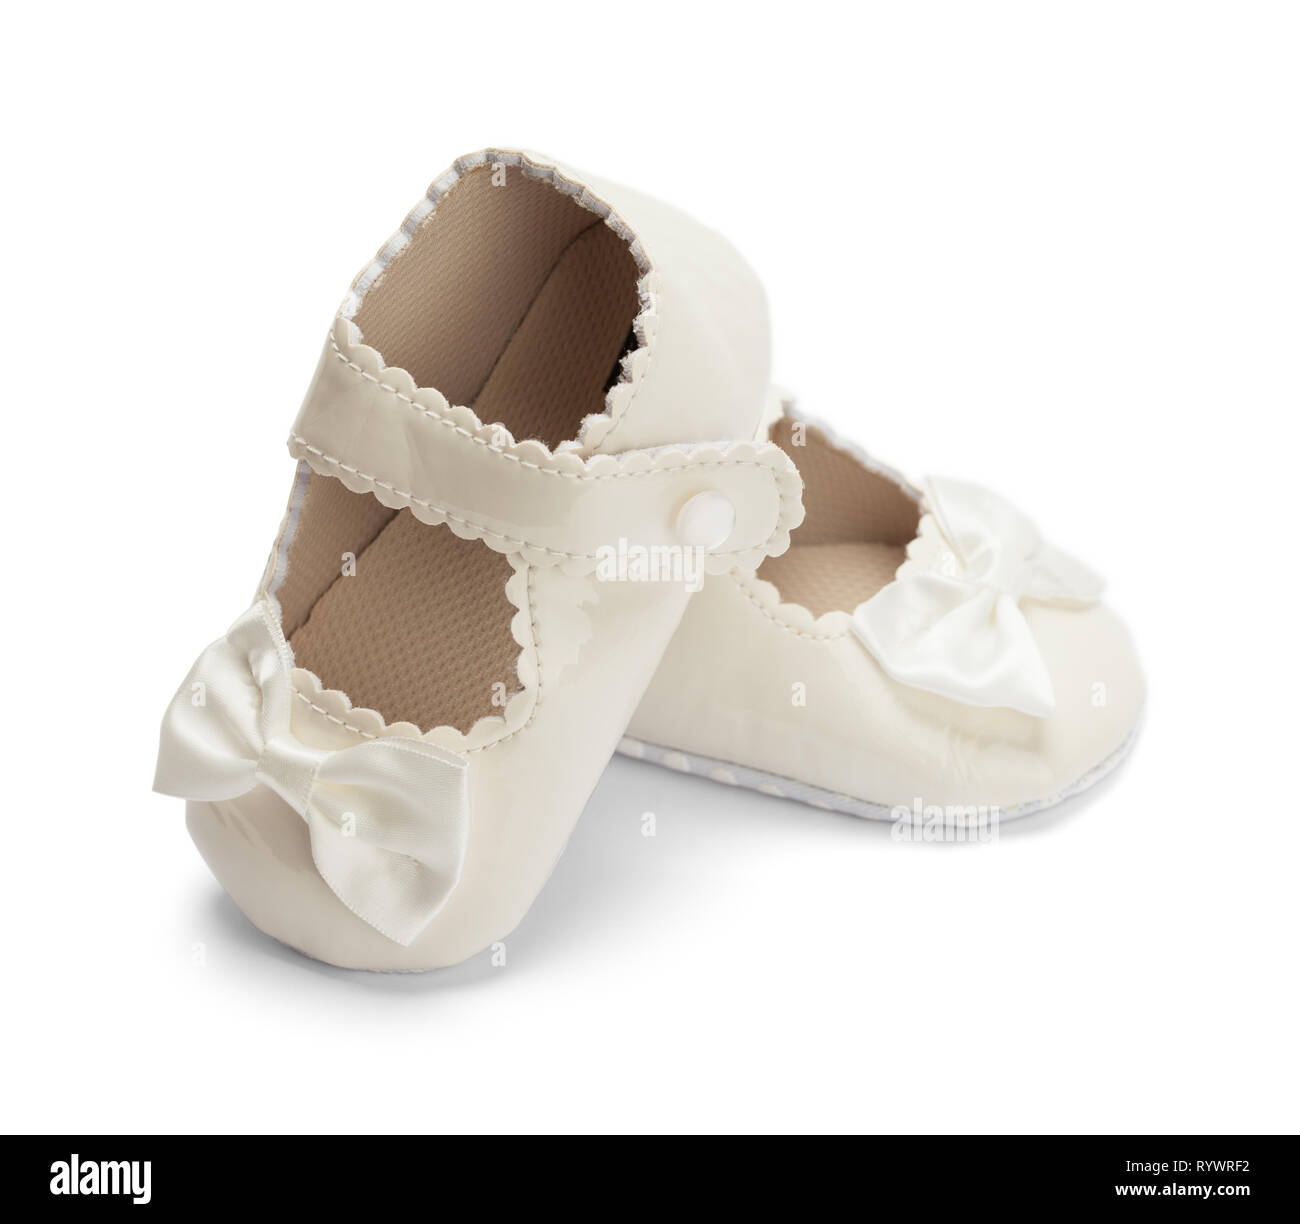 Pair of Girls Baby Shoes With Bows Isolated on White. - Stock Image